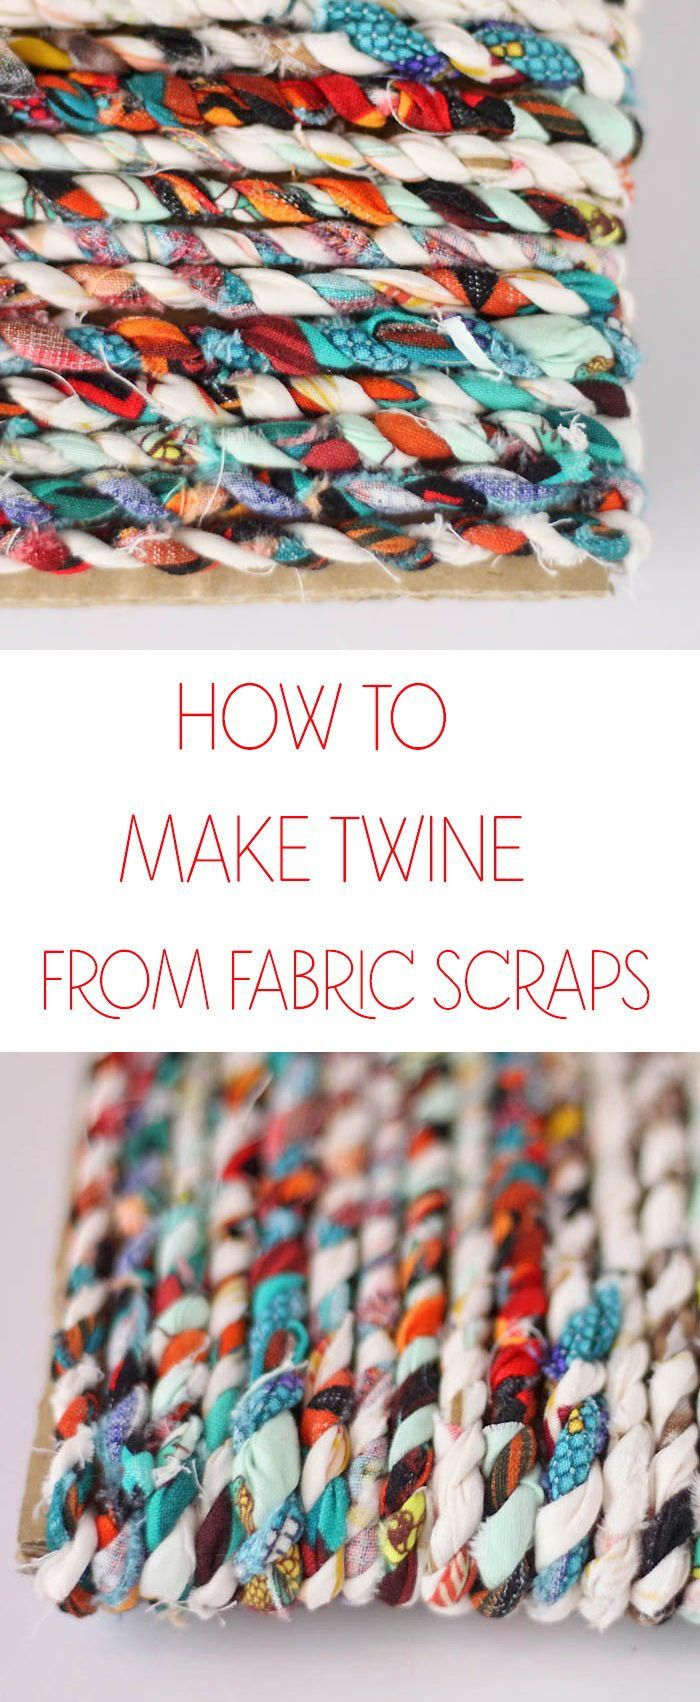 How to Make Twine from Fabric Scraps - Gina Michele